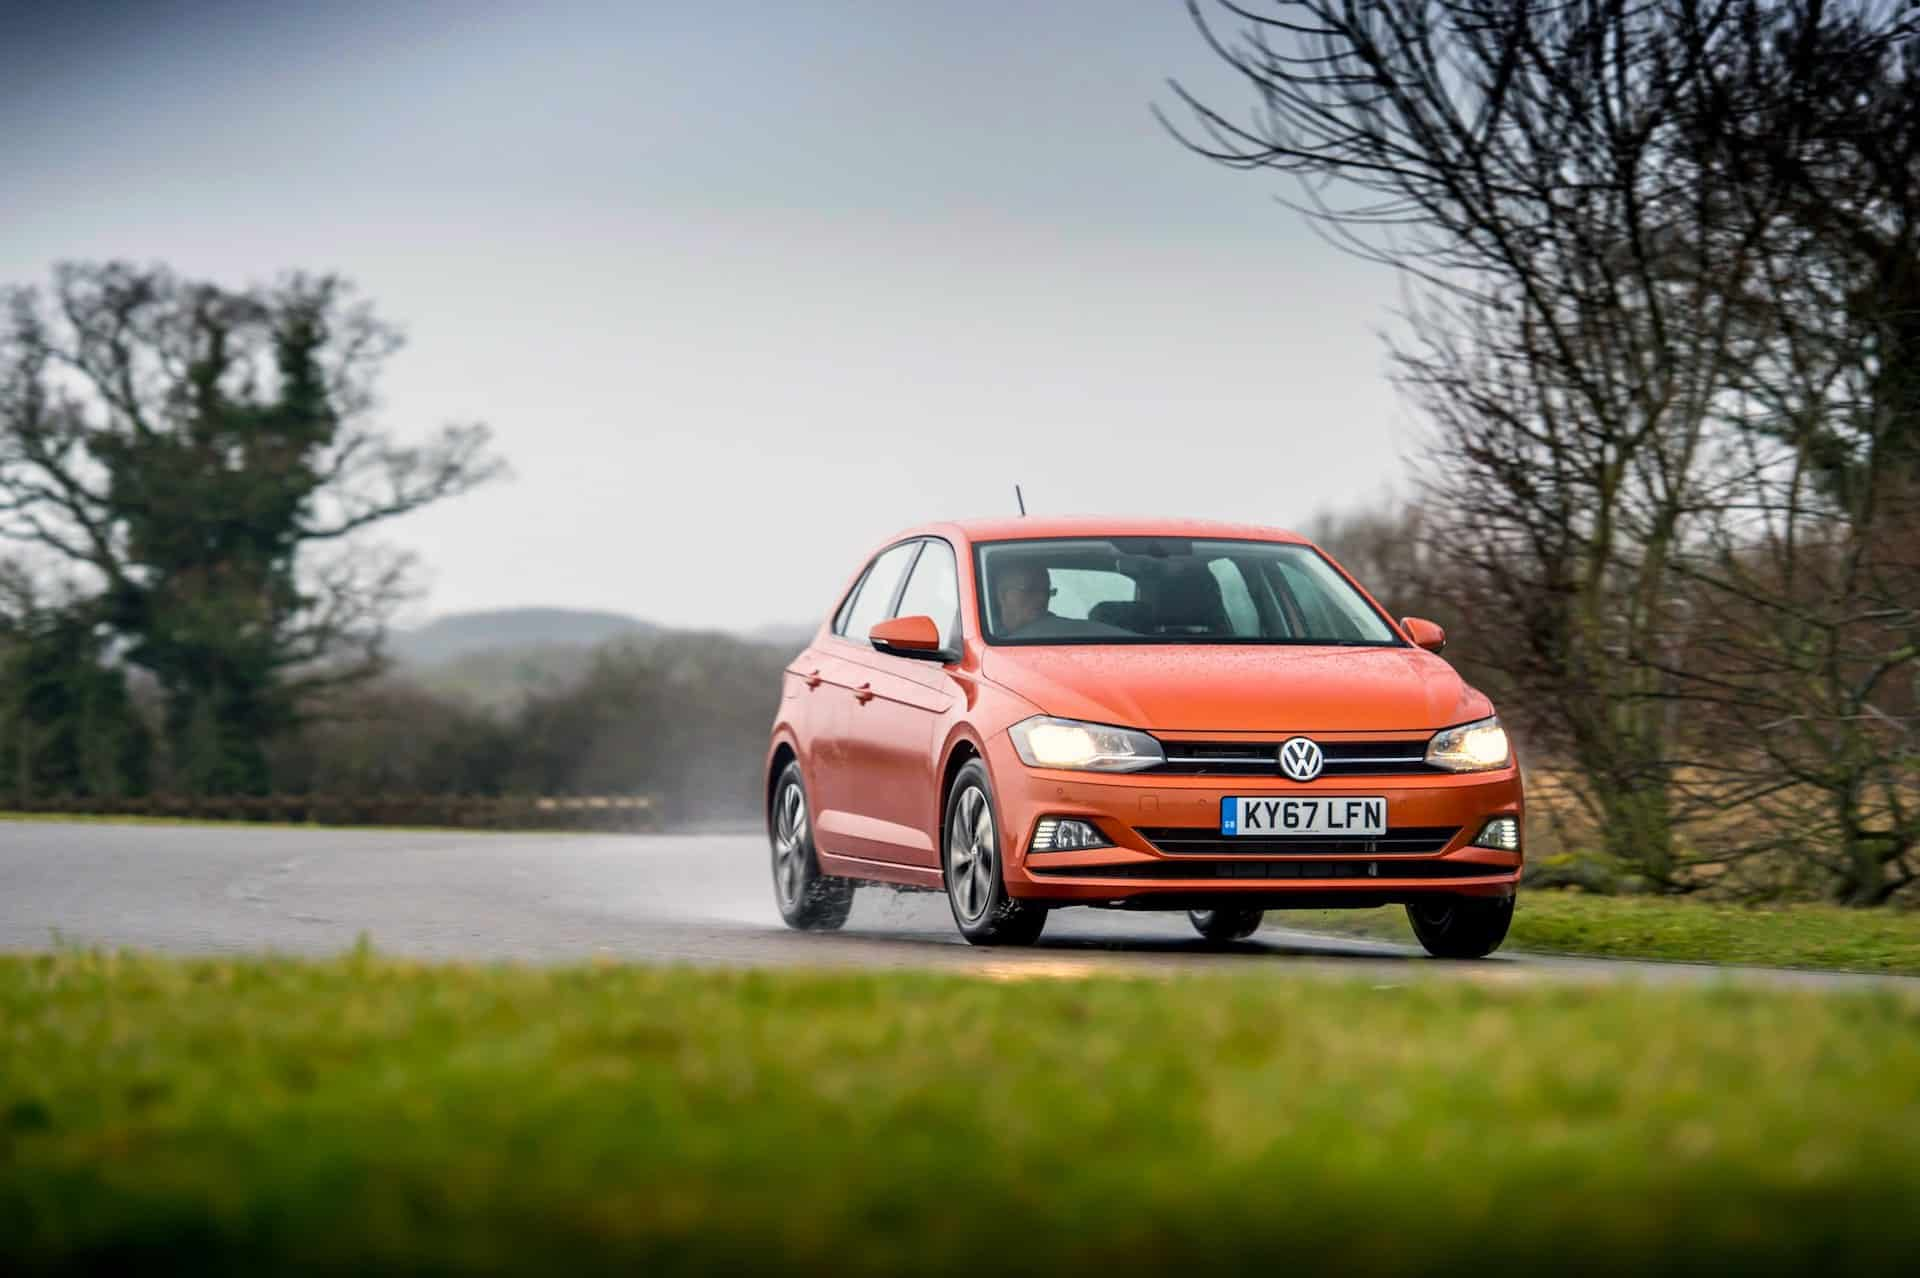 Volkswagen Polo ride and handling 2018 (The Car Expert)